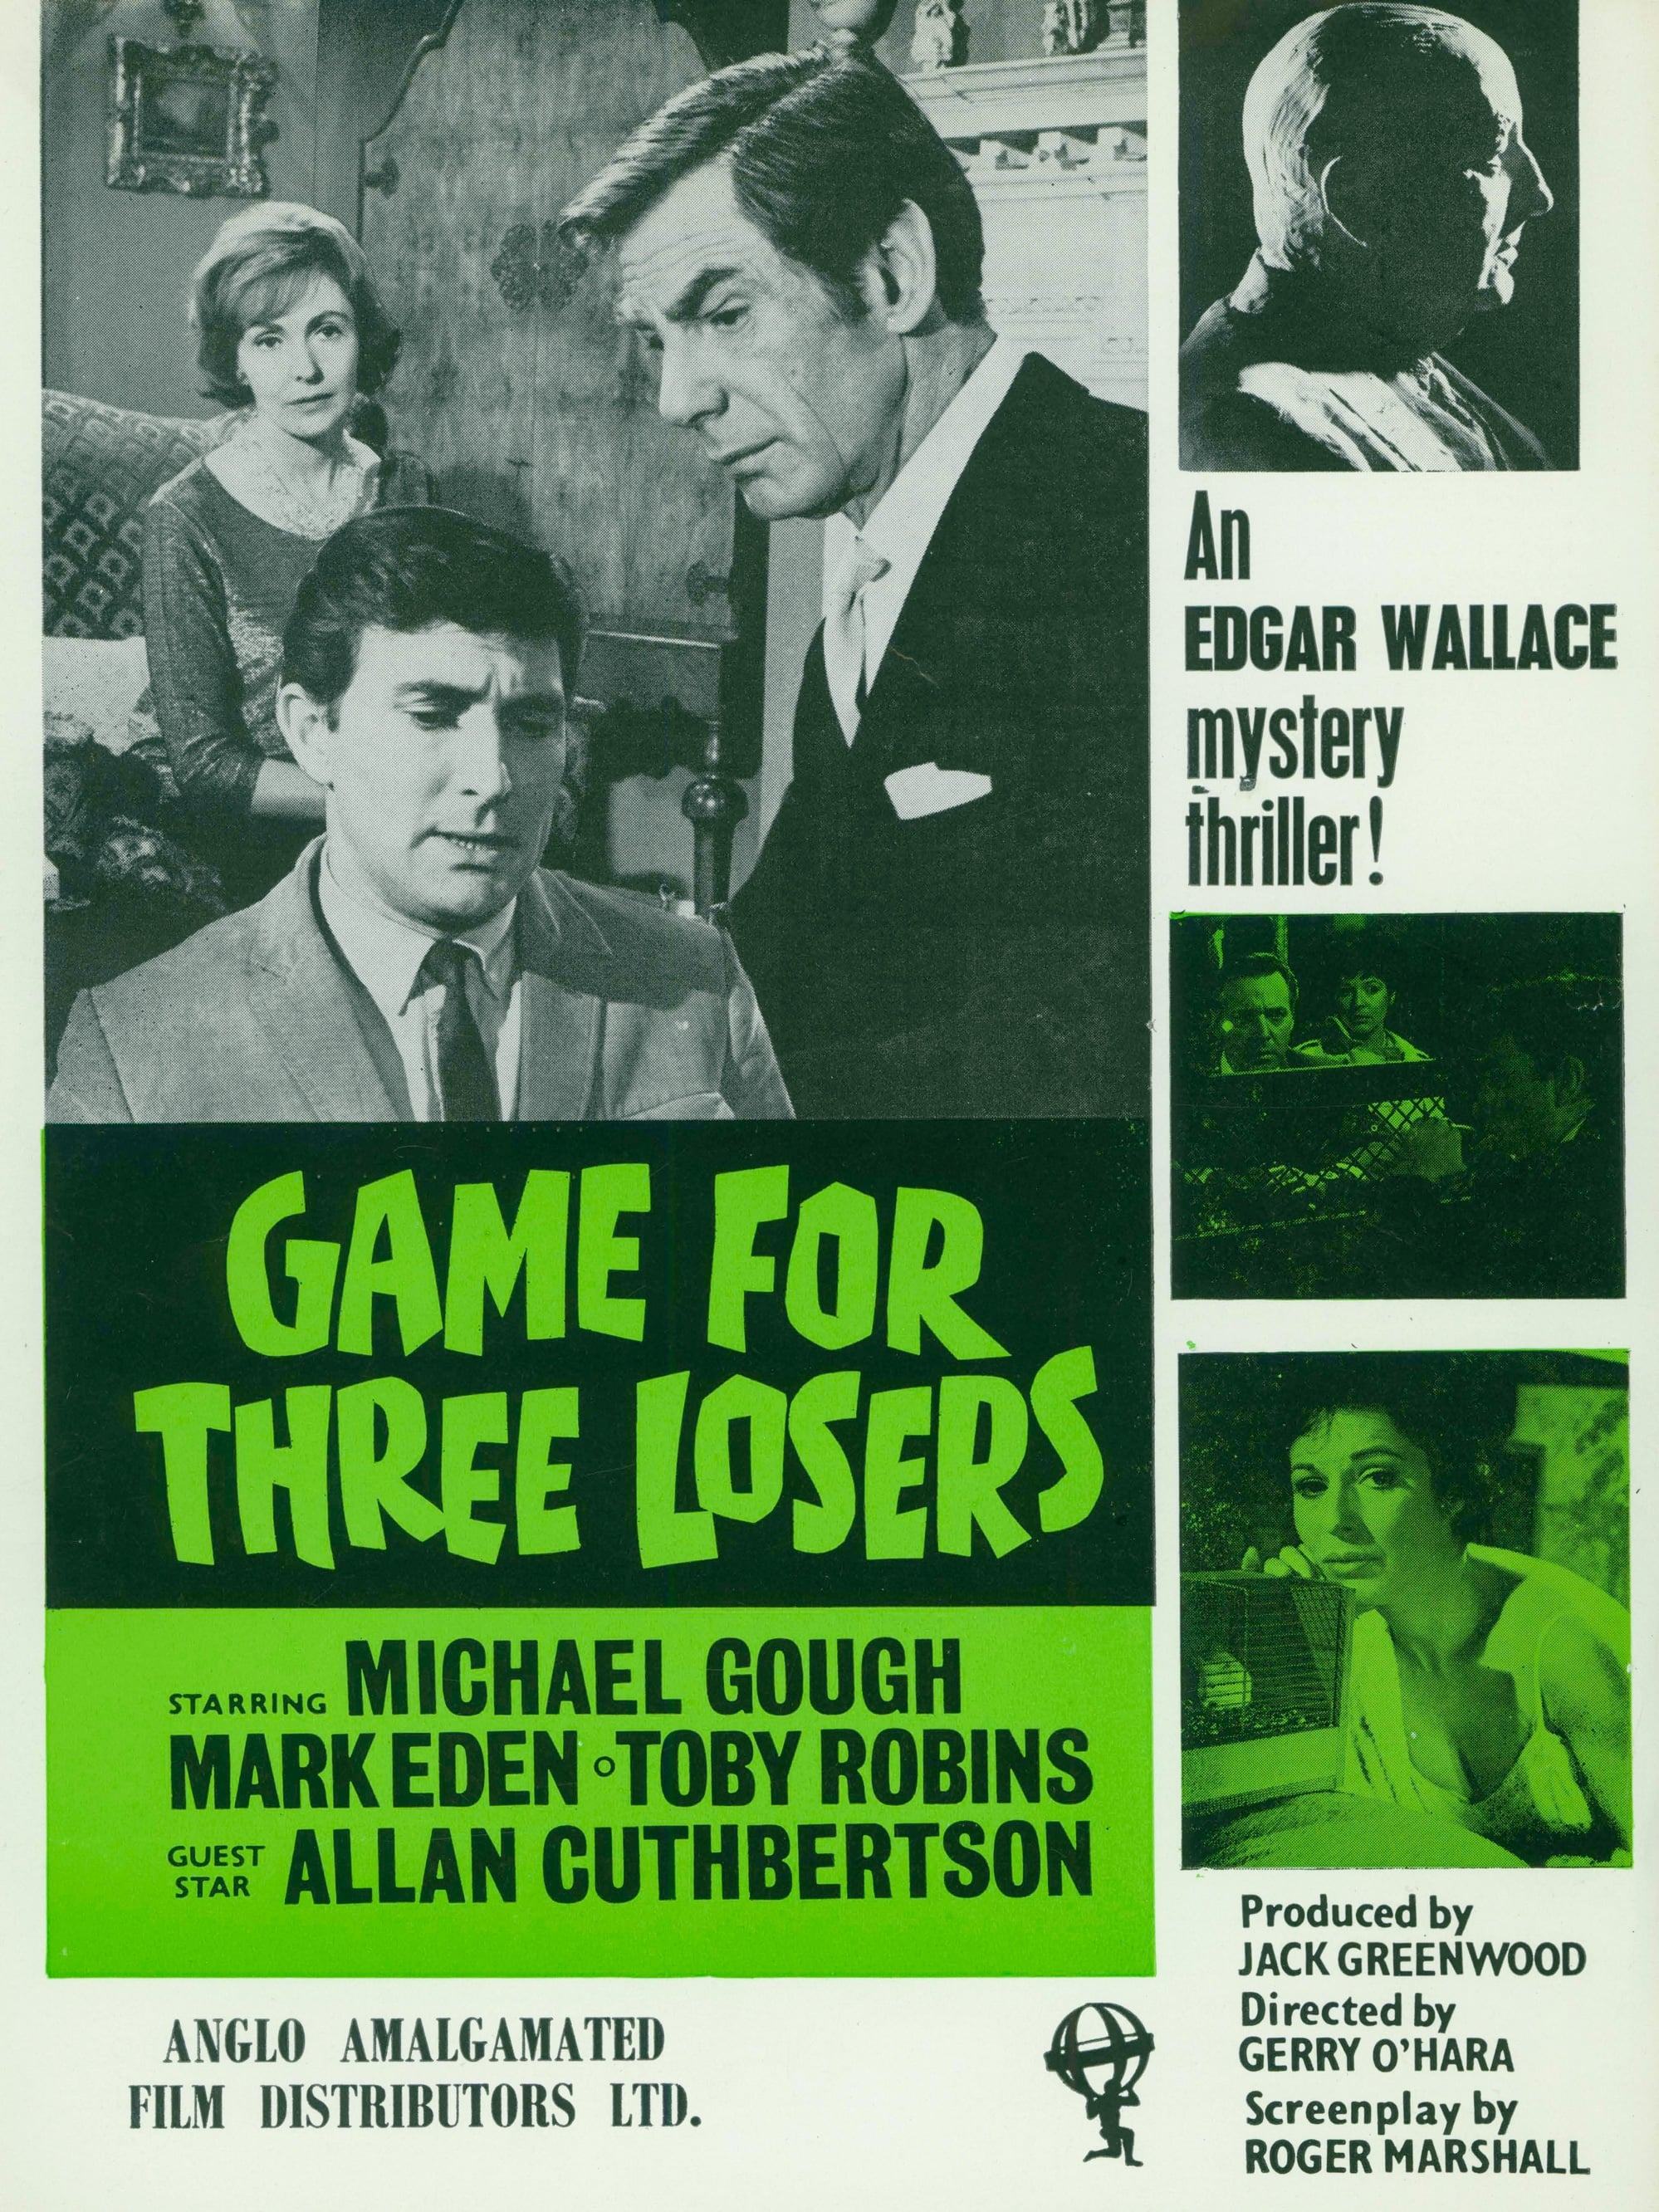 Game for Three Losers (1965)